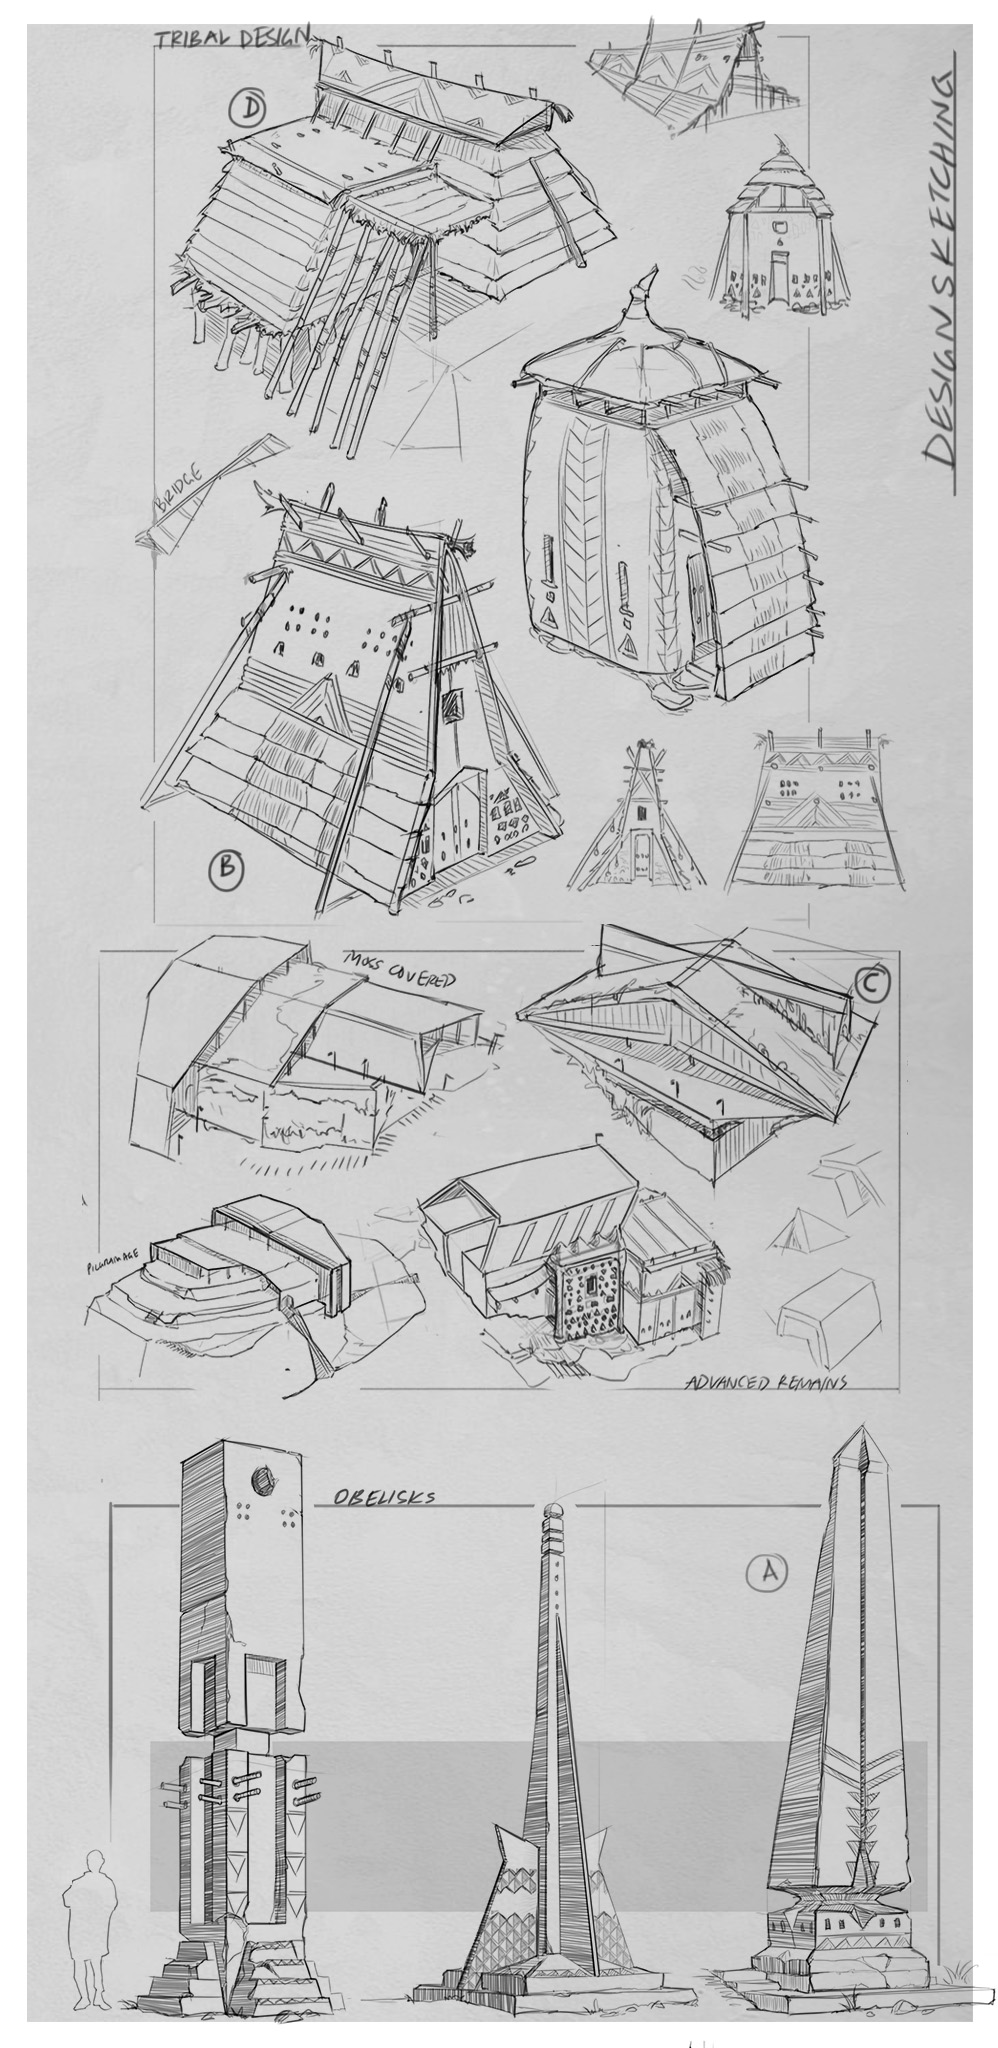 Concept Sheet | Design sketches for REMNANT project.